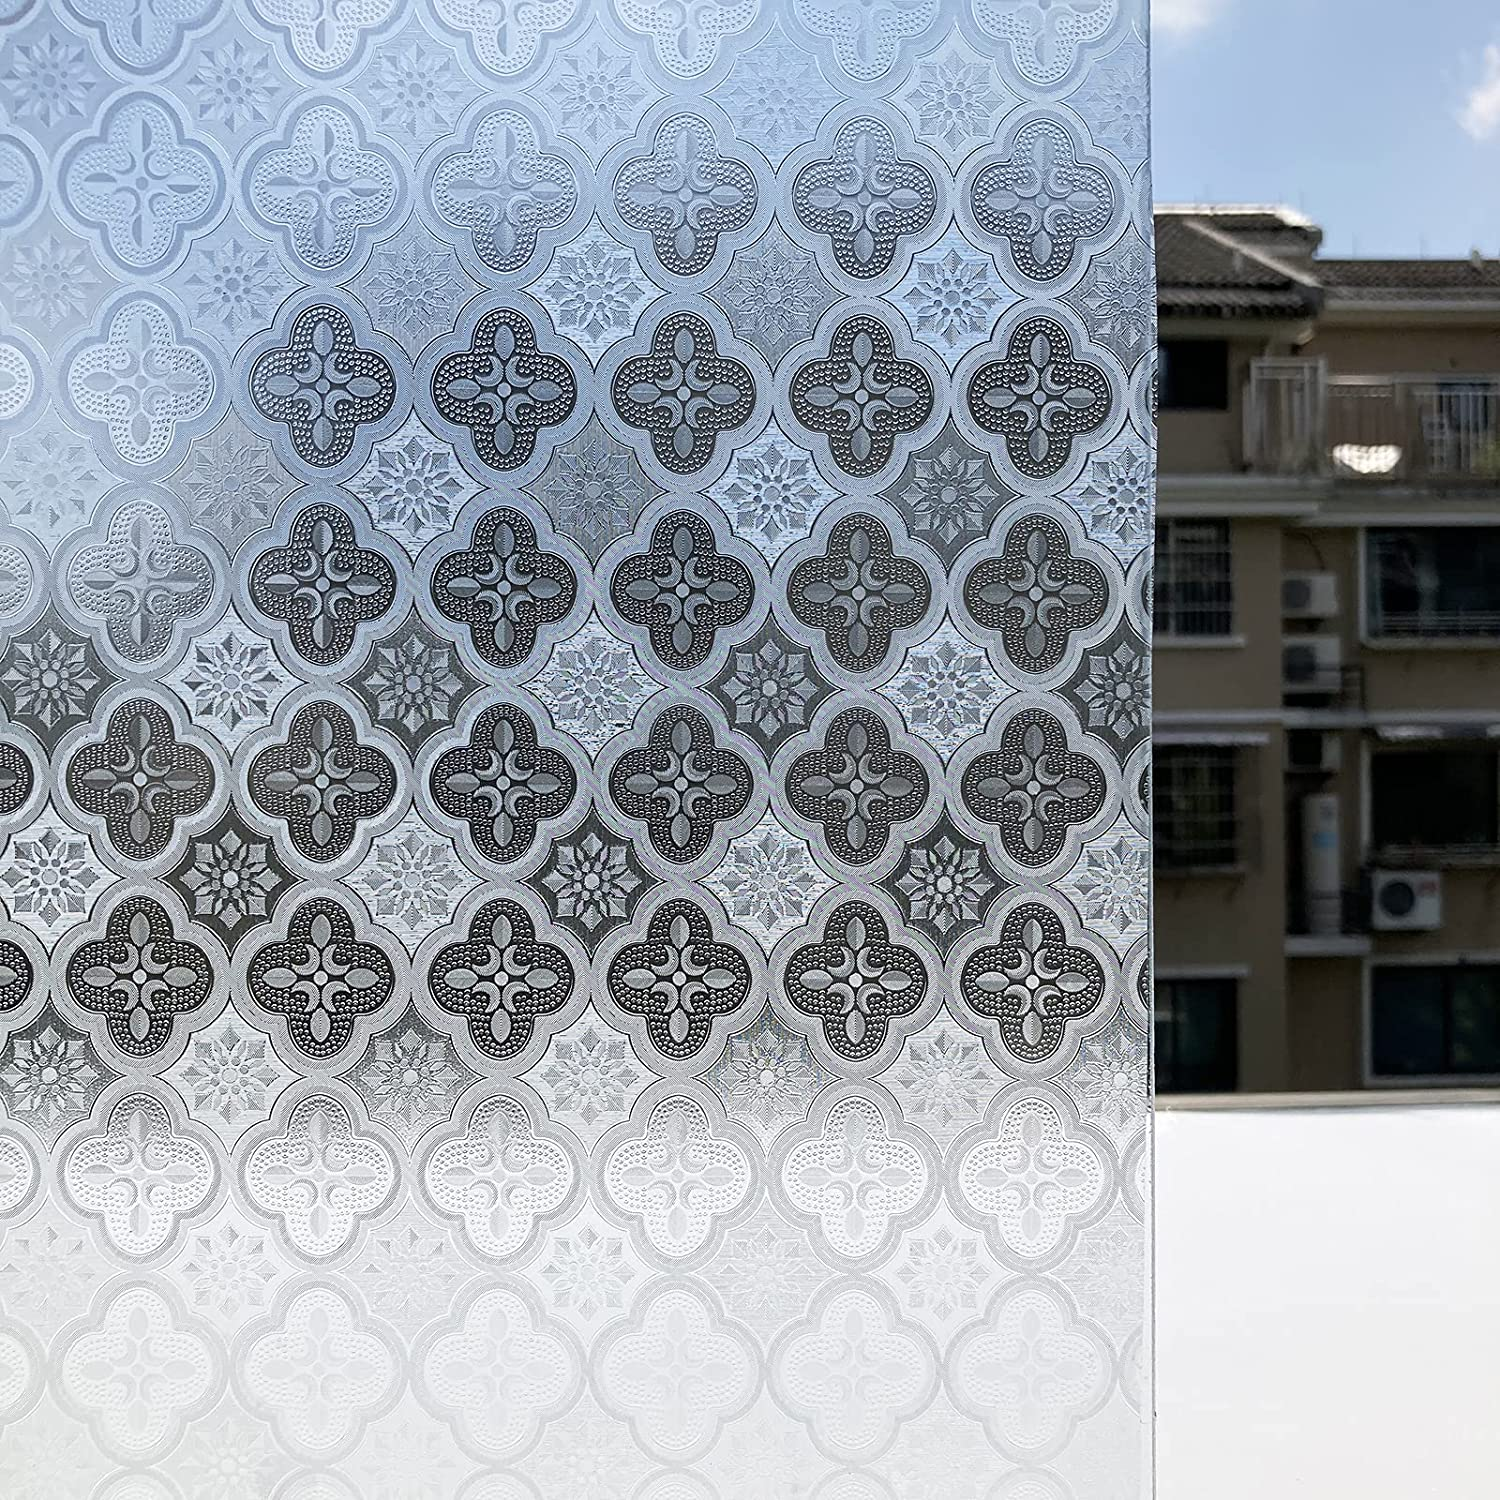 lsrrret Window Film 3D Static Max 63% OFF Glu Cling Weekly update Privacy No